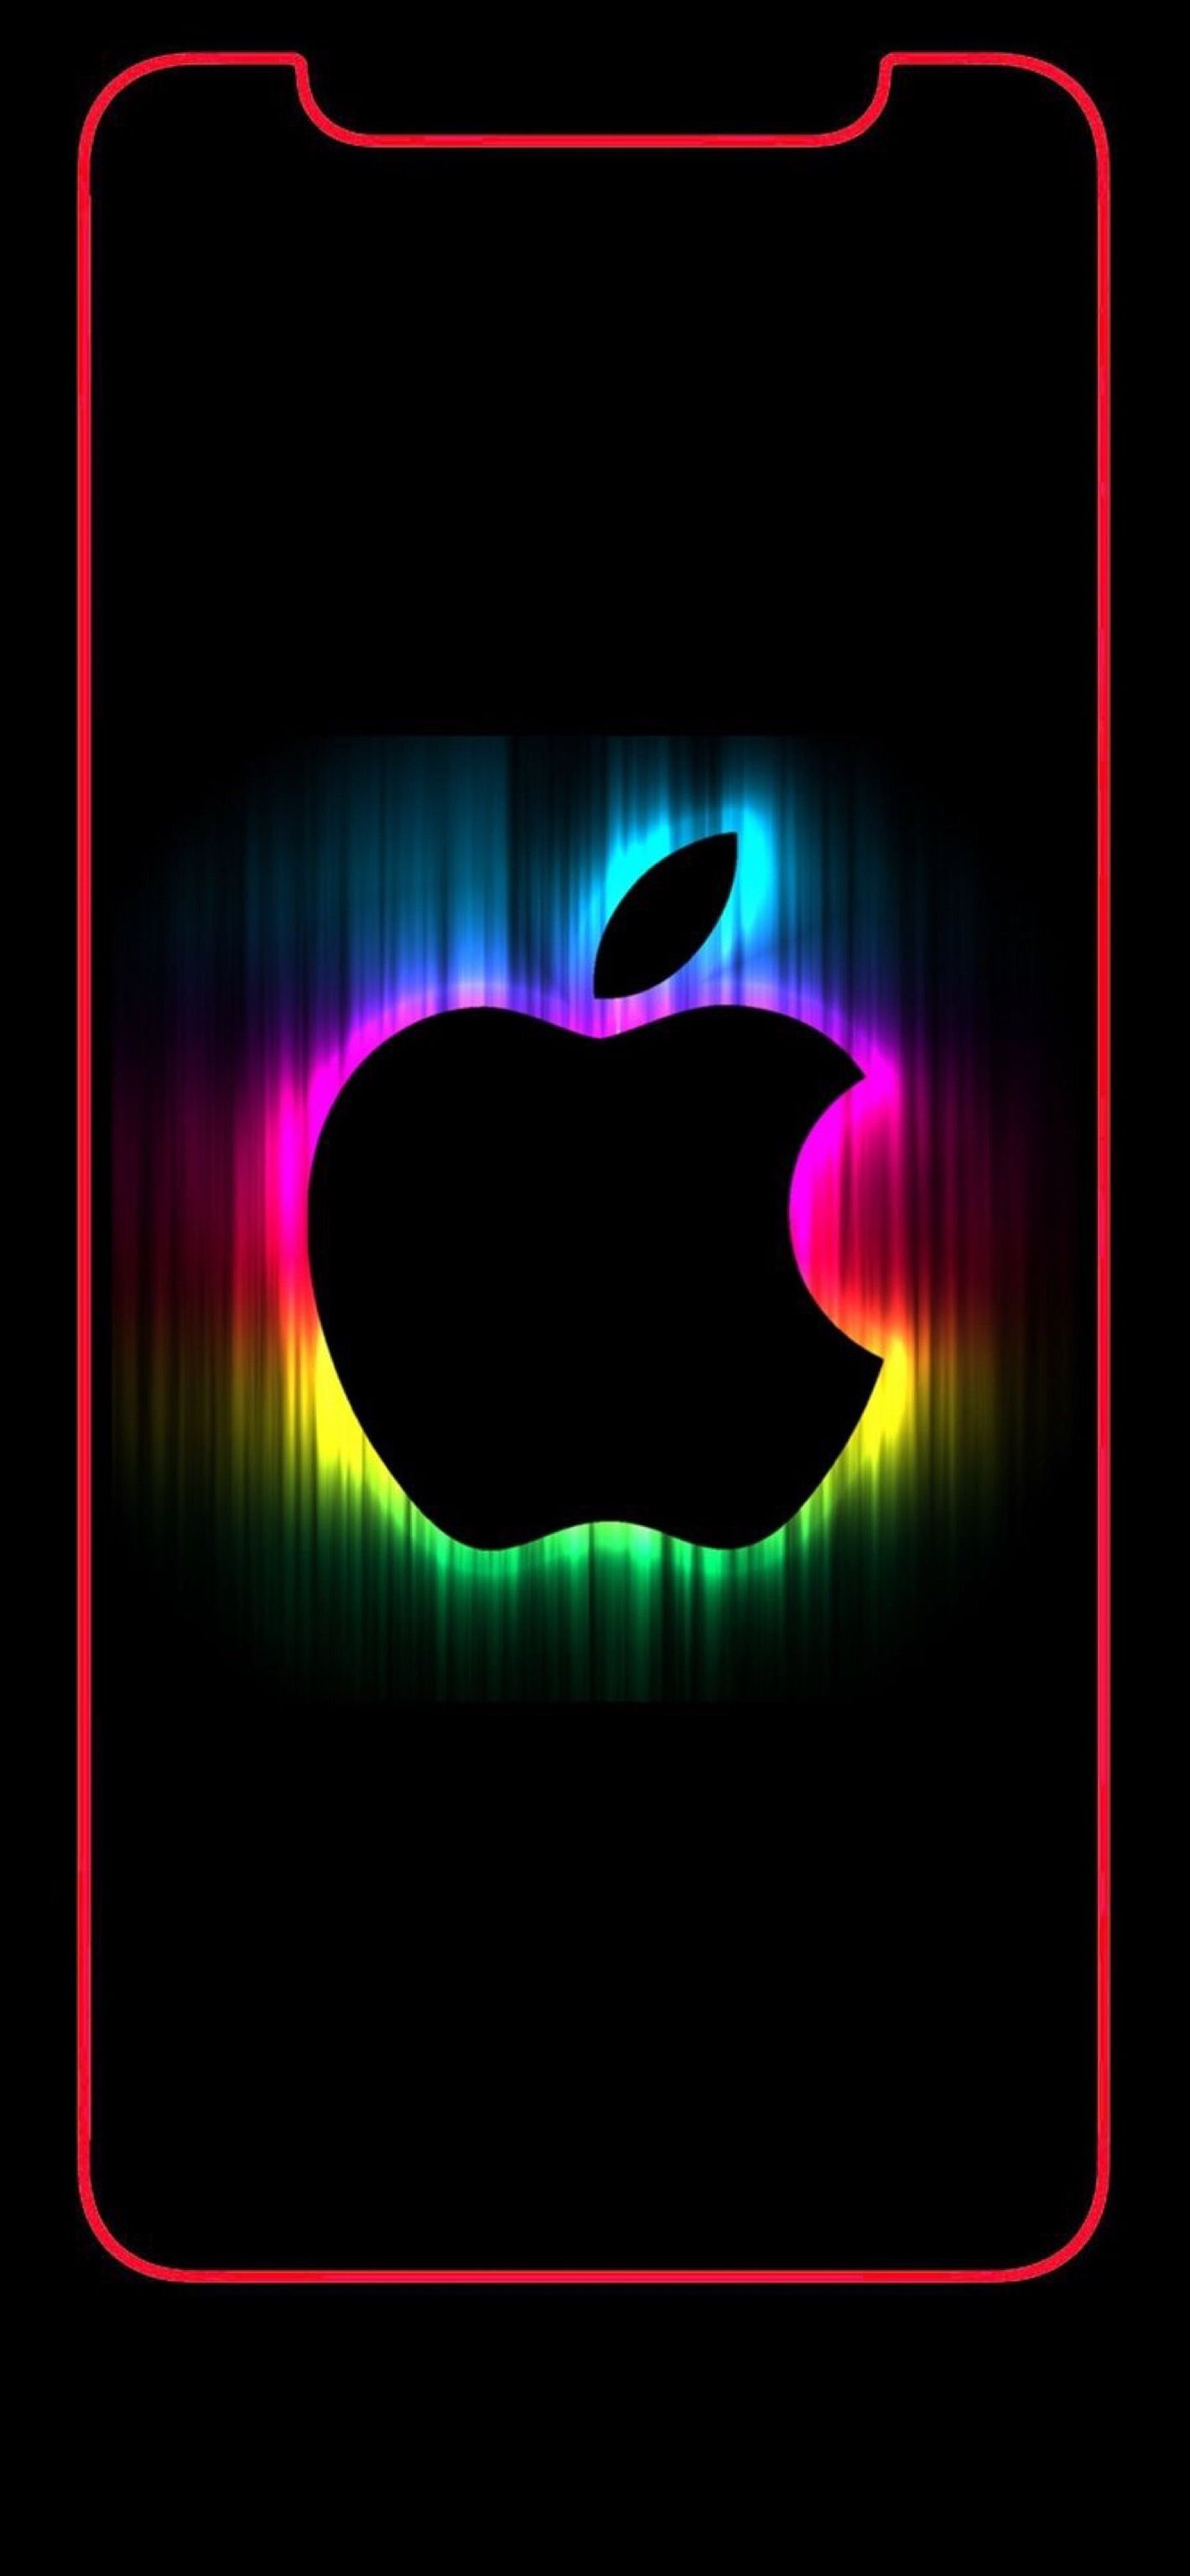 Cool Apple Logo 1419x3072 Wallpaper Teahub Io